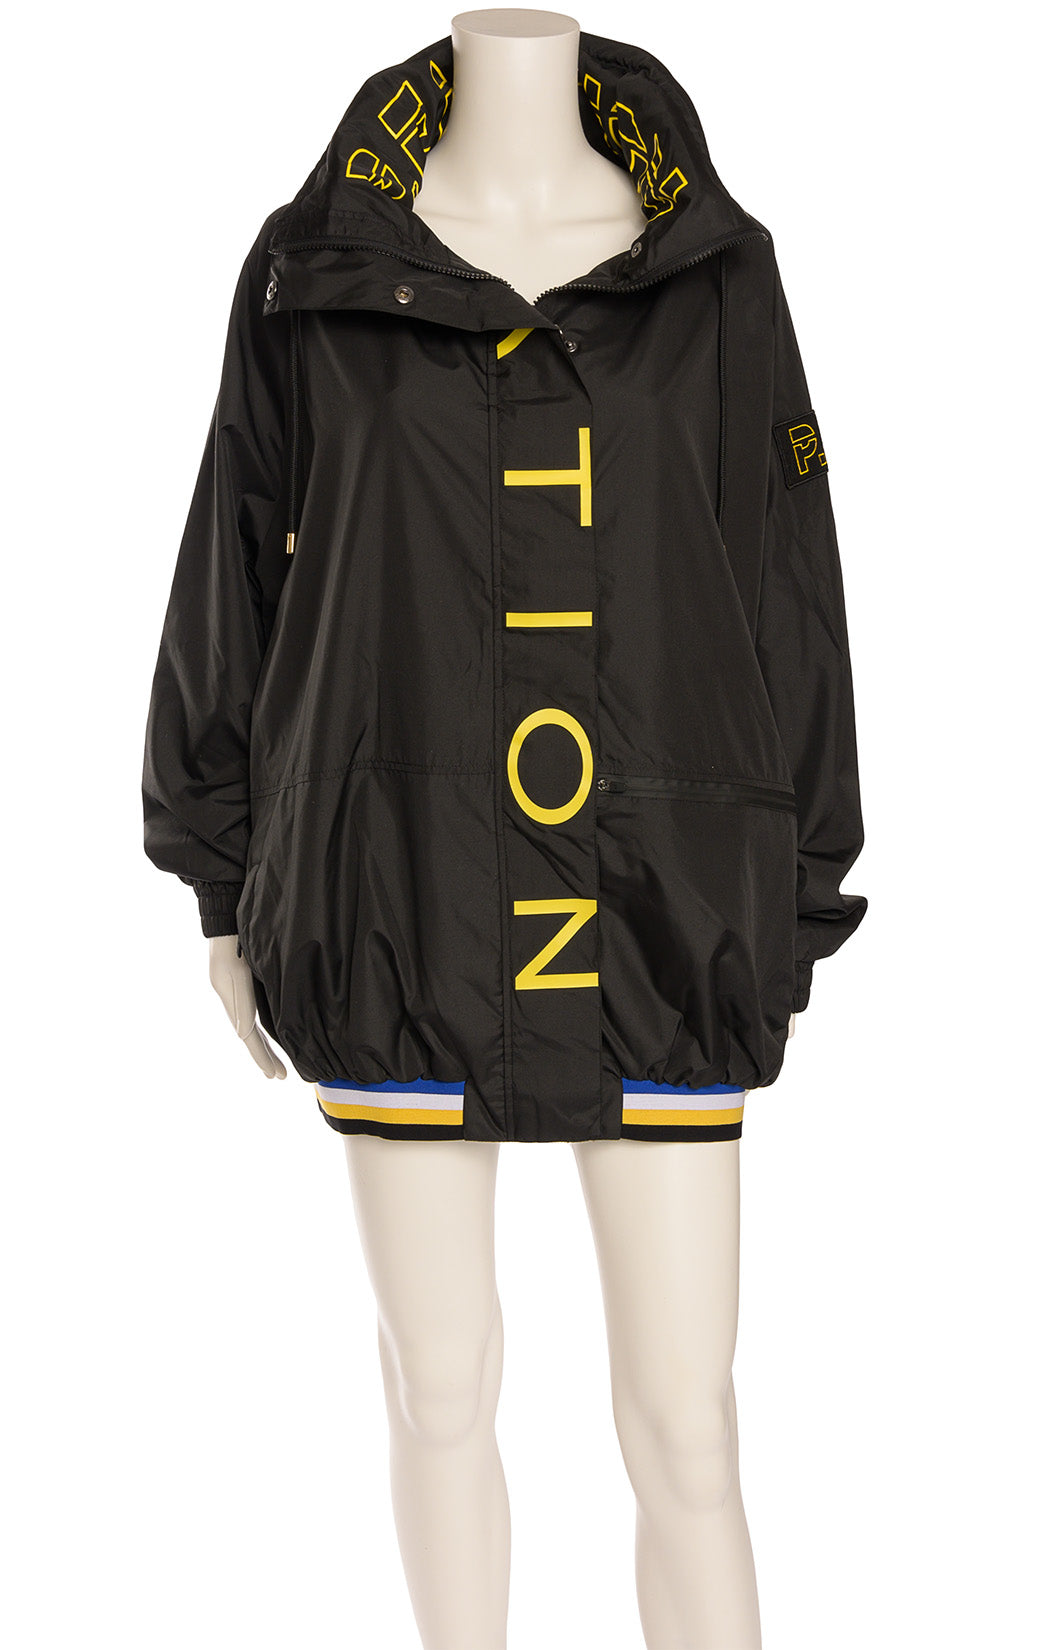 Front view of P.E.NATION with tags  Jacket  Size: XS-S